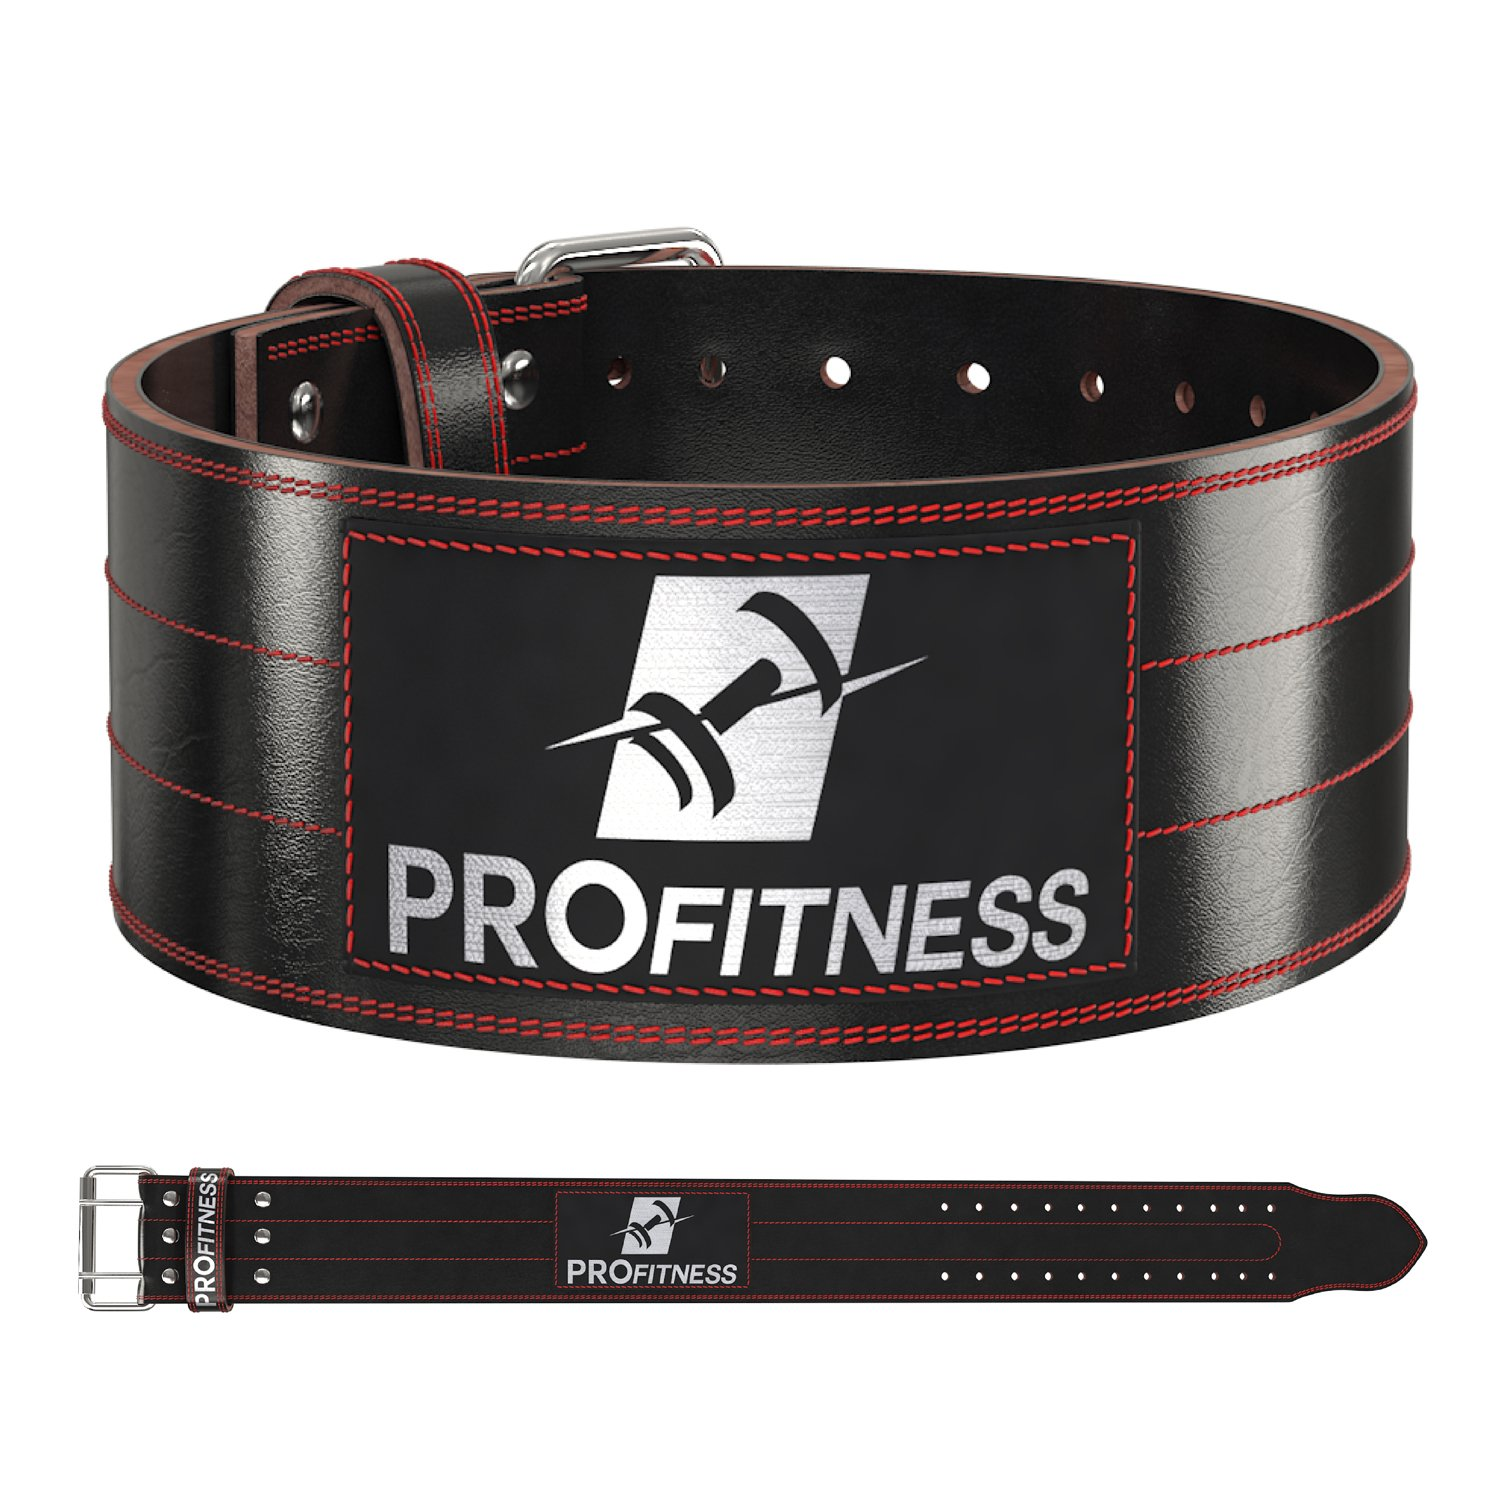 ProFitness Dark Leather Workout Belt (4 Inches Wide) - Proper Weightlifting Form - Lower Back and Lumbar Support for Cross Training Exercises, Powerlifting Workouts, Deadlifts (Black/Red, Small)